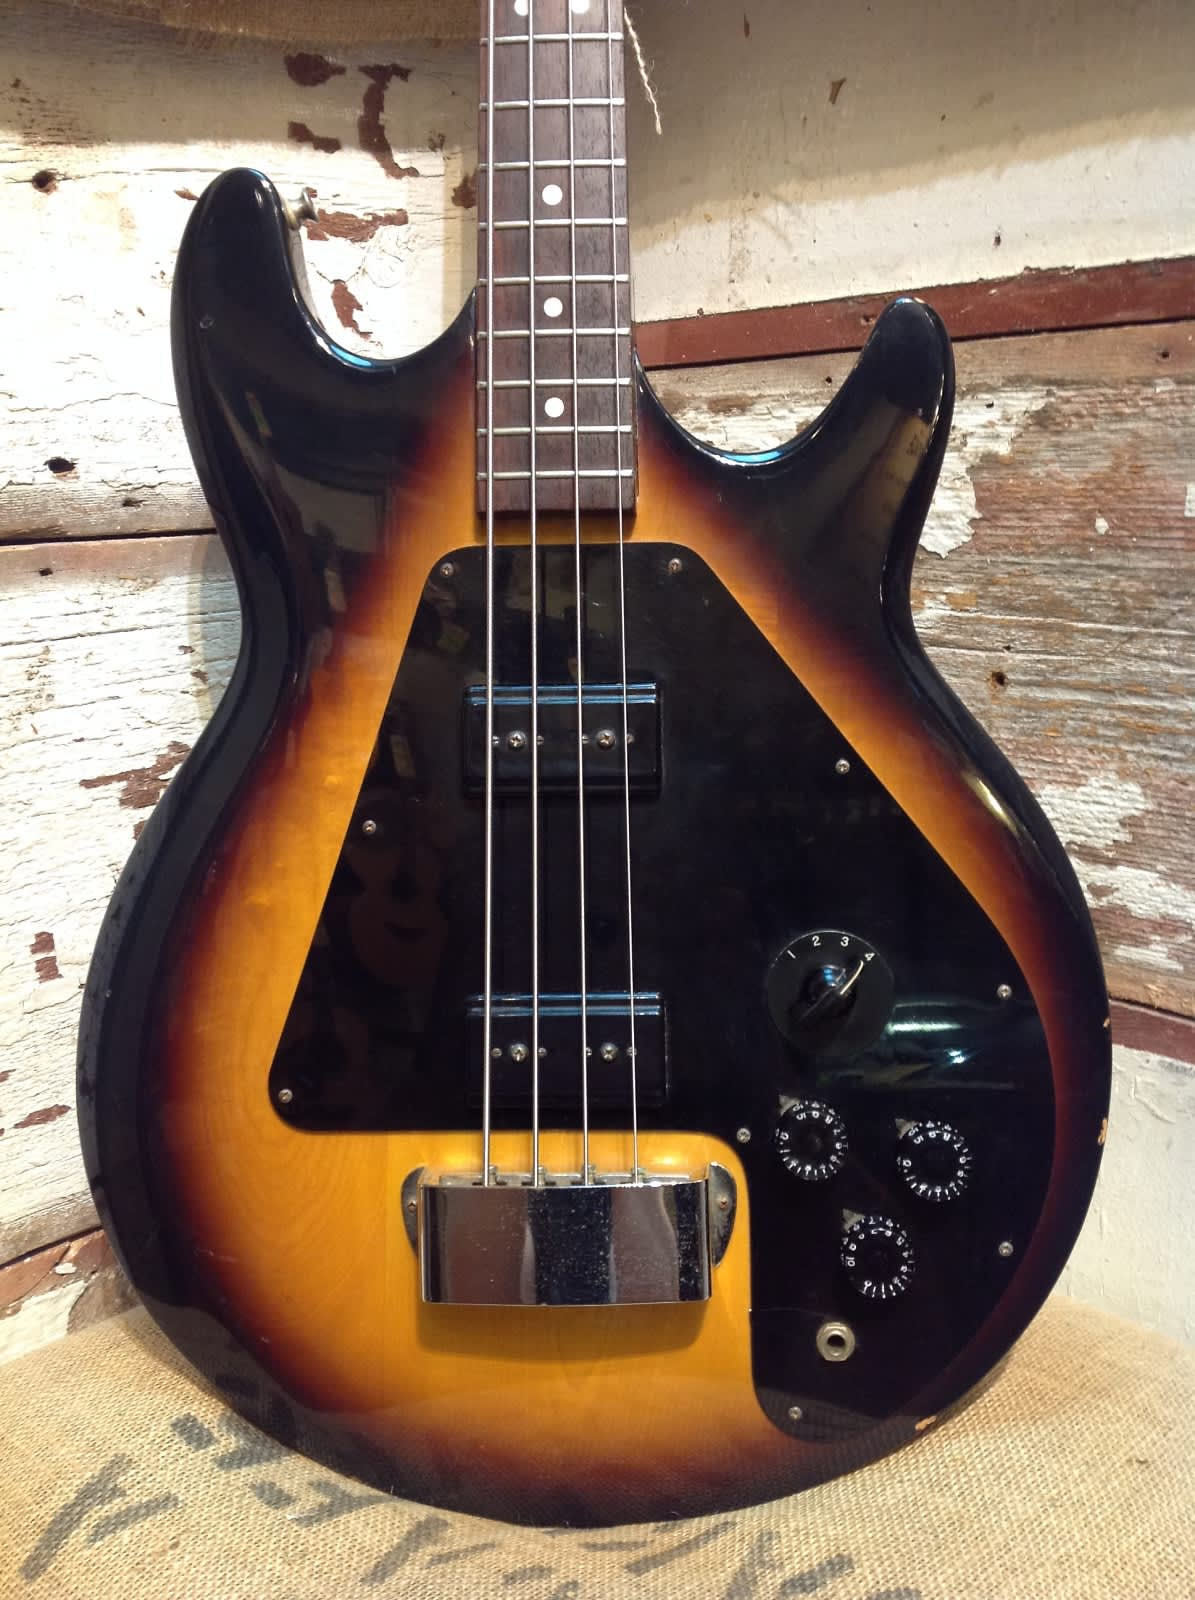 dating aria pro ii guitars Official website of aria guitars co leading in quality and excellence of electric, acoustic, bass, and classical guitars since 1965.